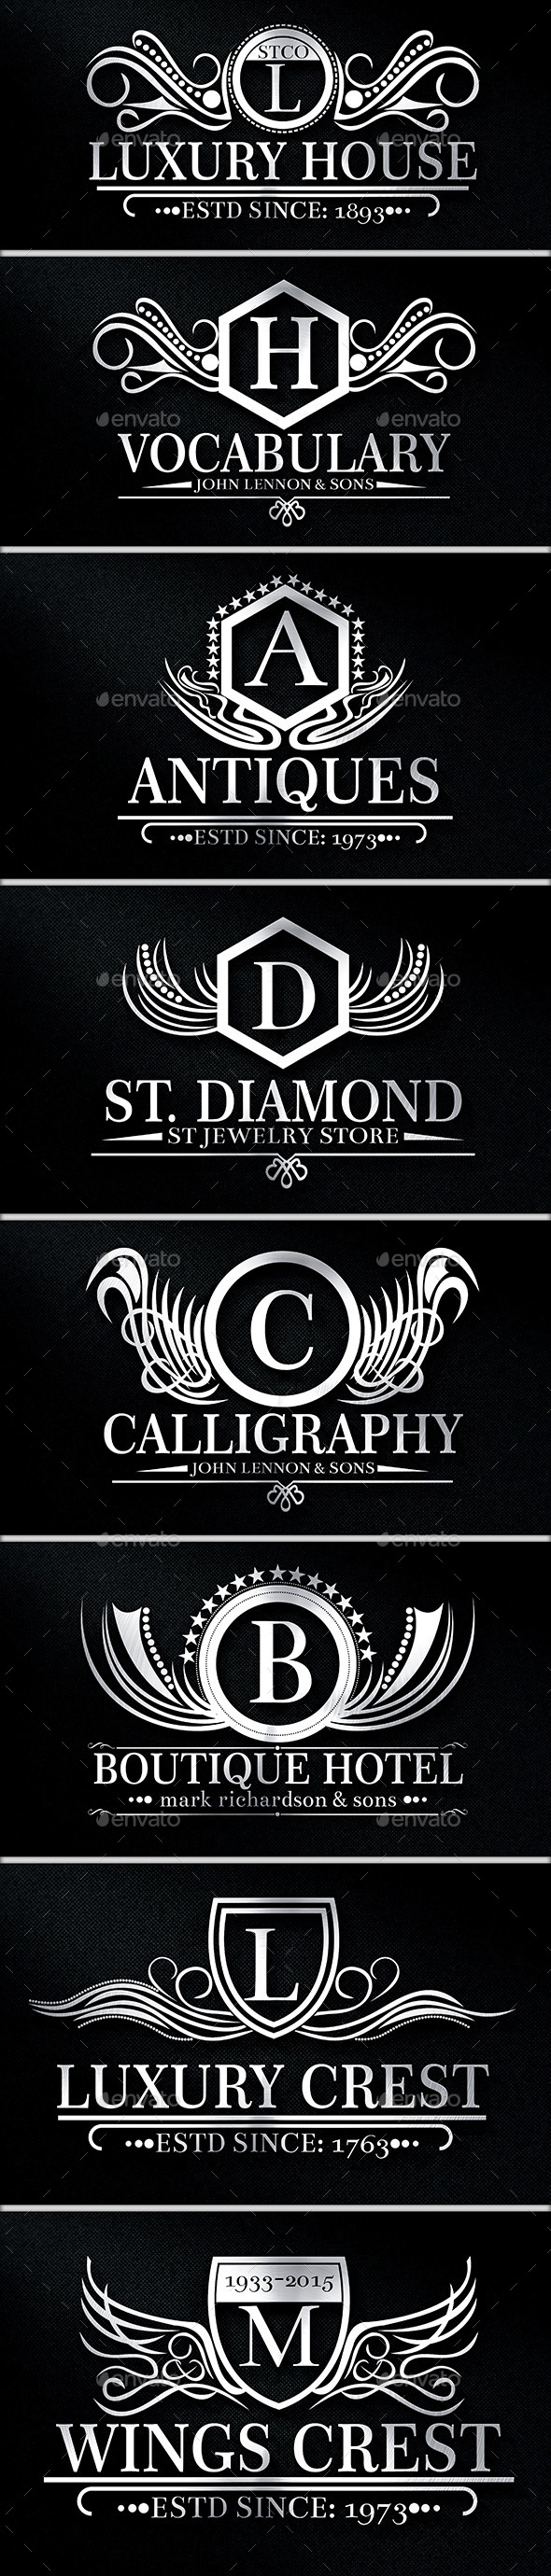 Luxurious Crest Logos Vol 9